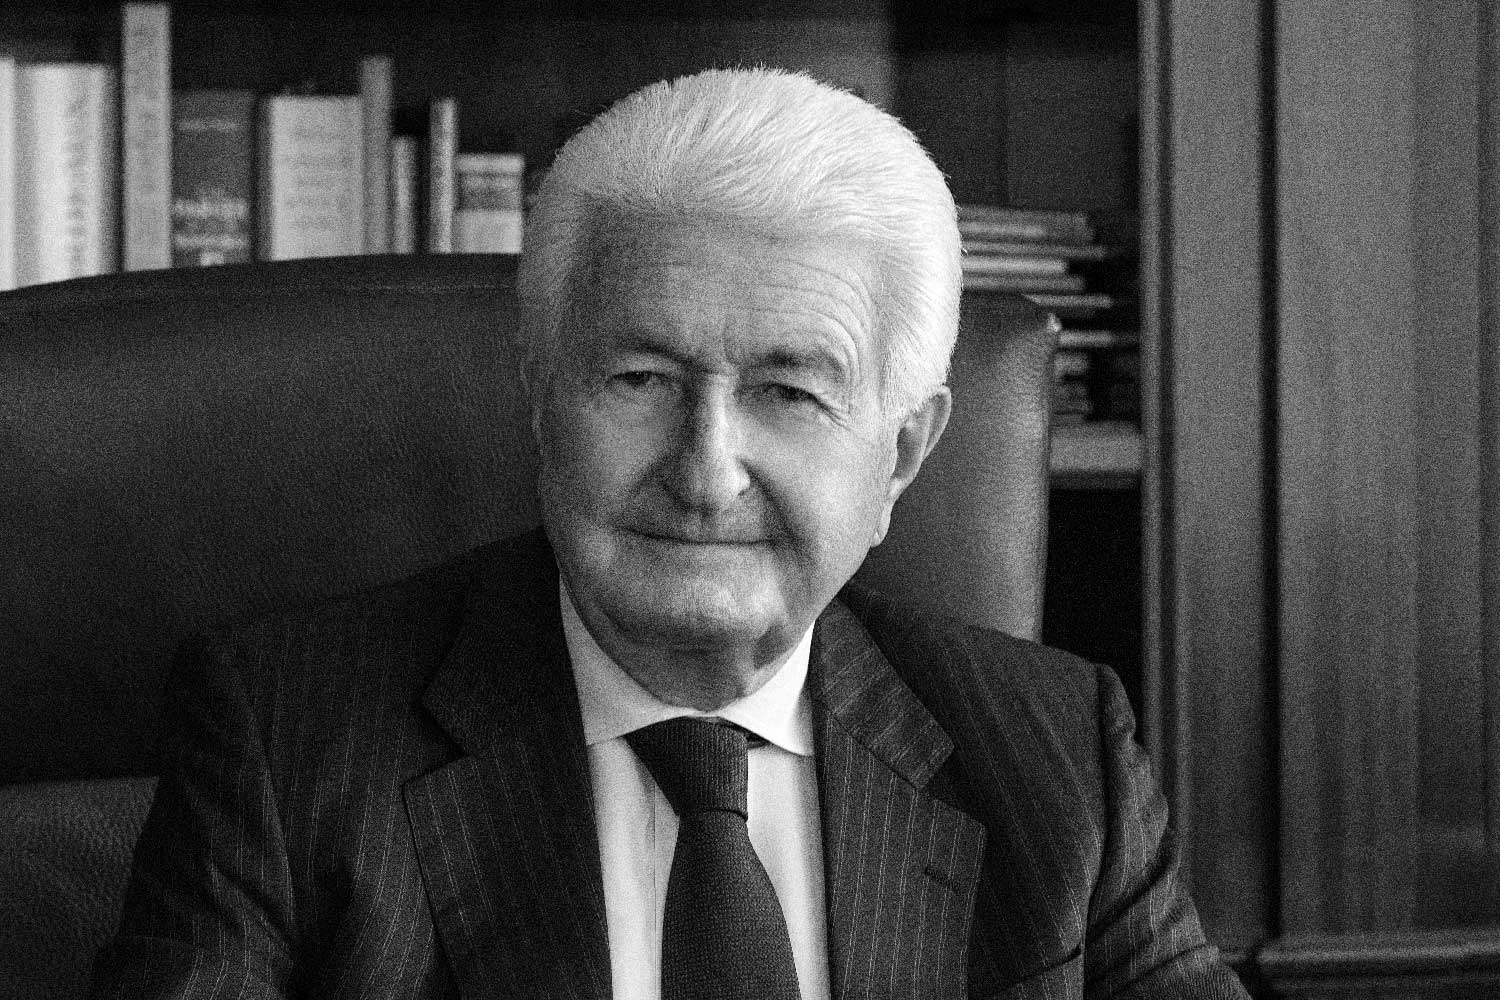 Jörg G. Bucherer took over as the company's head in 1977.